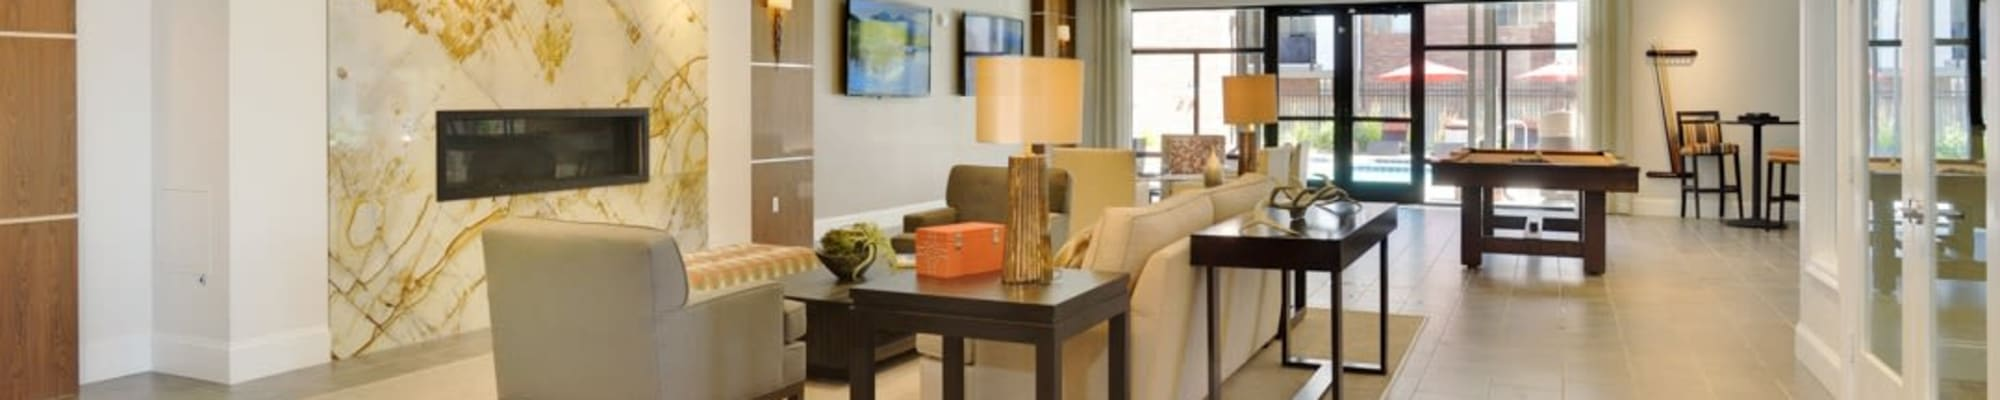 Photo gallery at The Parc at Greenwood Village in Greenwood Village, Colorado